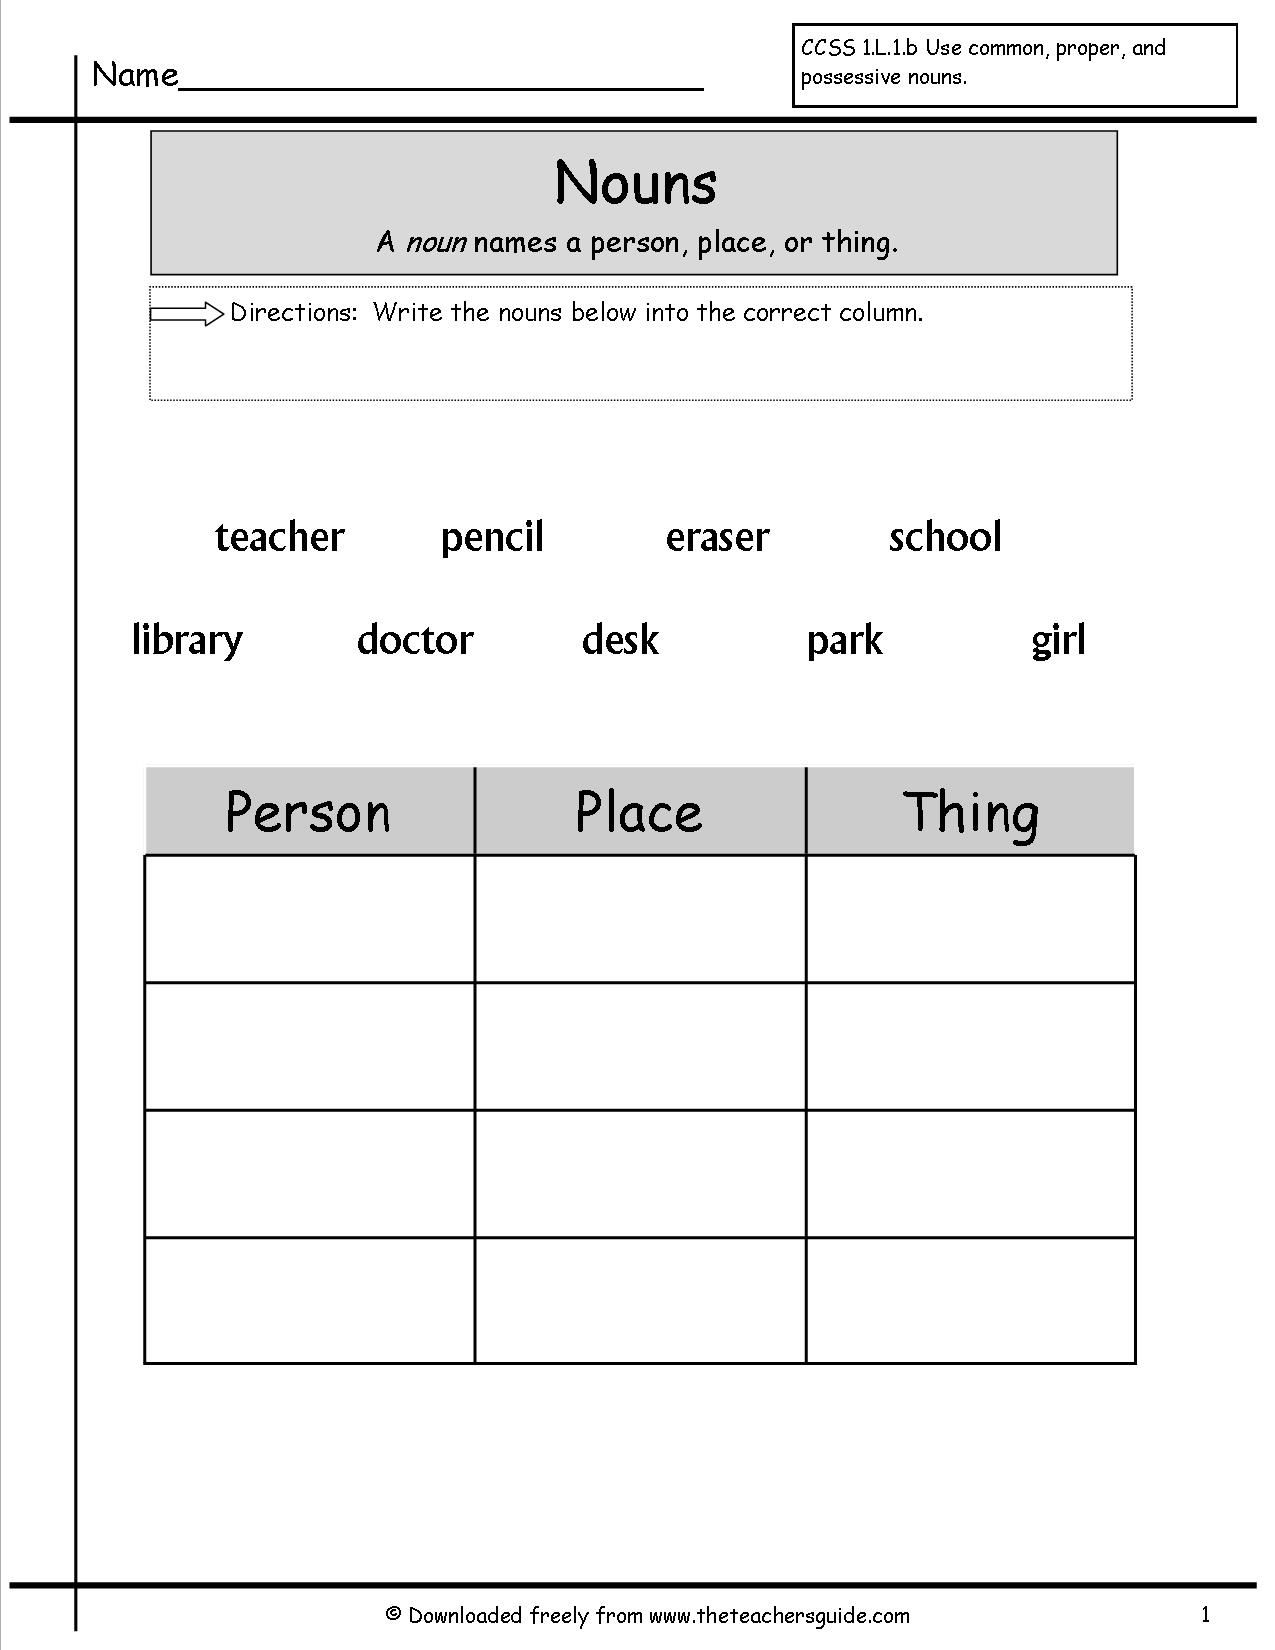 English Grammar Worksheets Grade 1 Image Collections